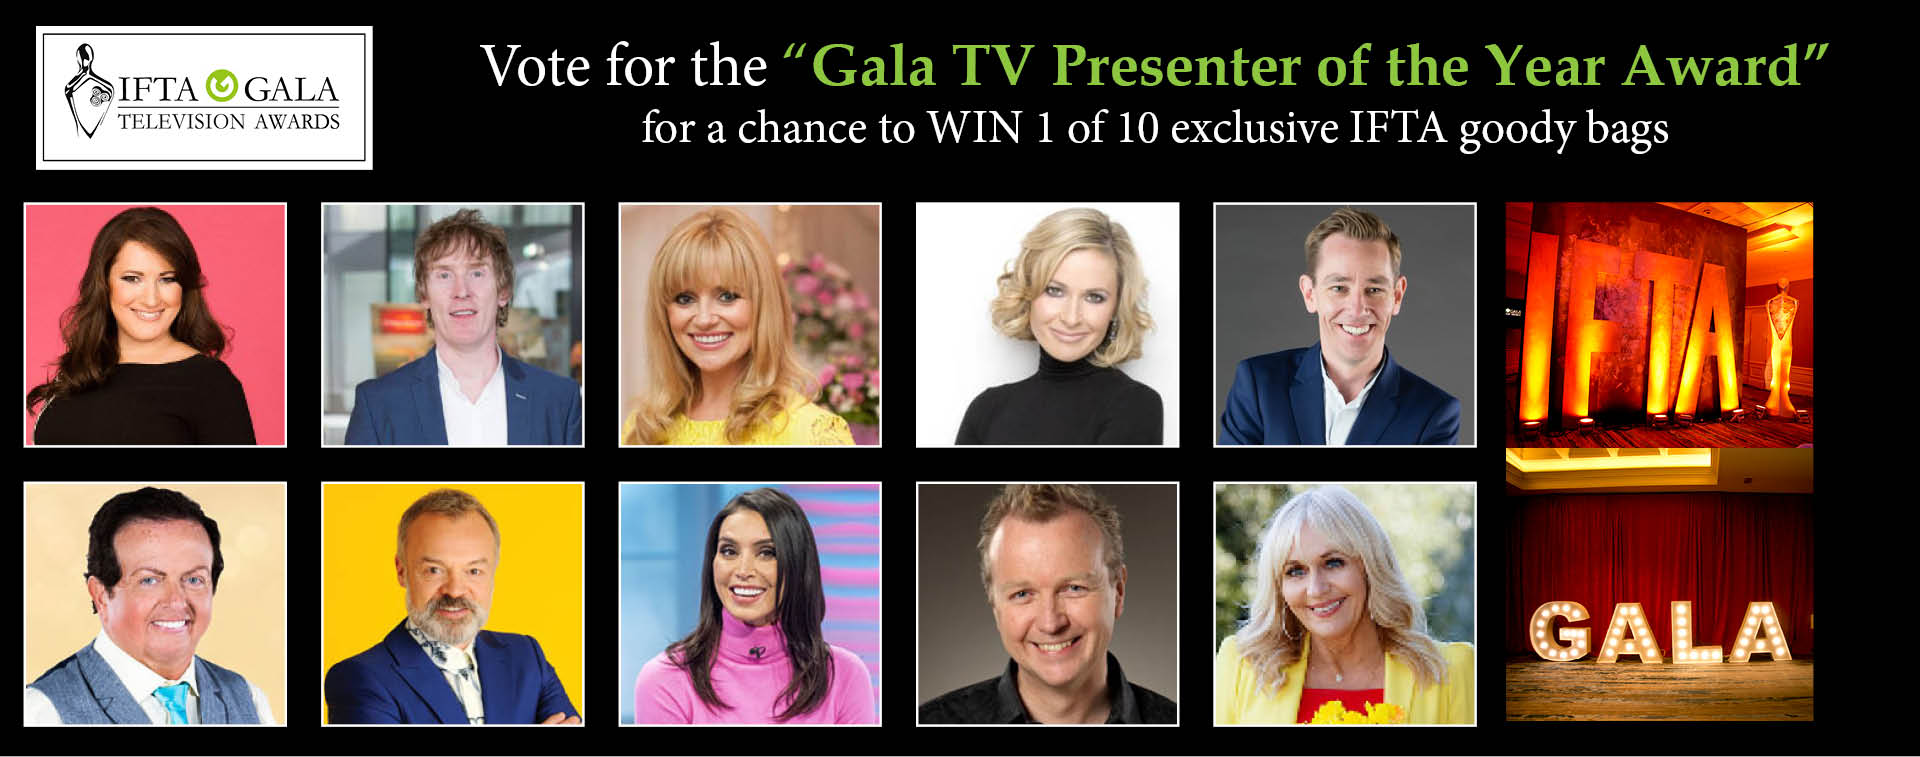 Vote for the Gala TV Presenter of the Year Award for a chance to win 1 of 10 exclusive IFTA goody bags